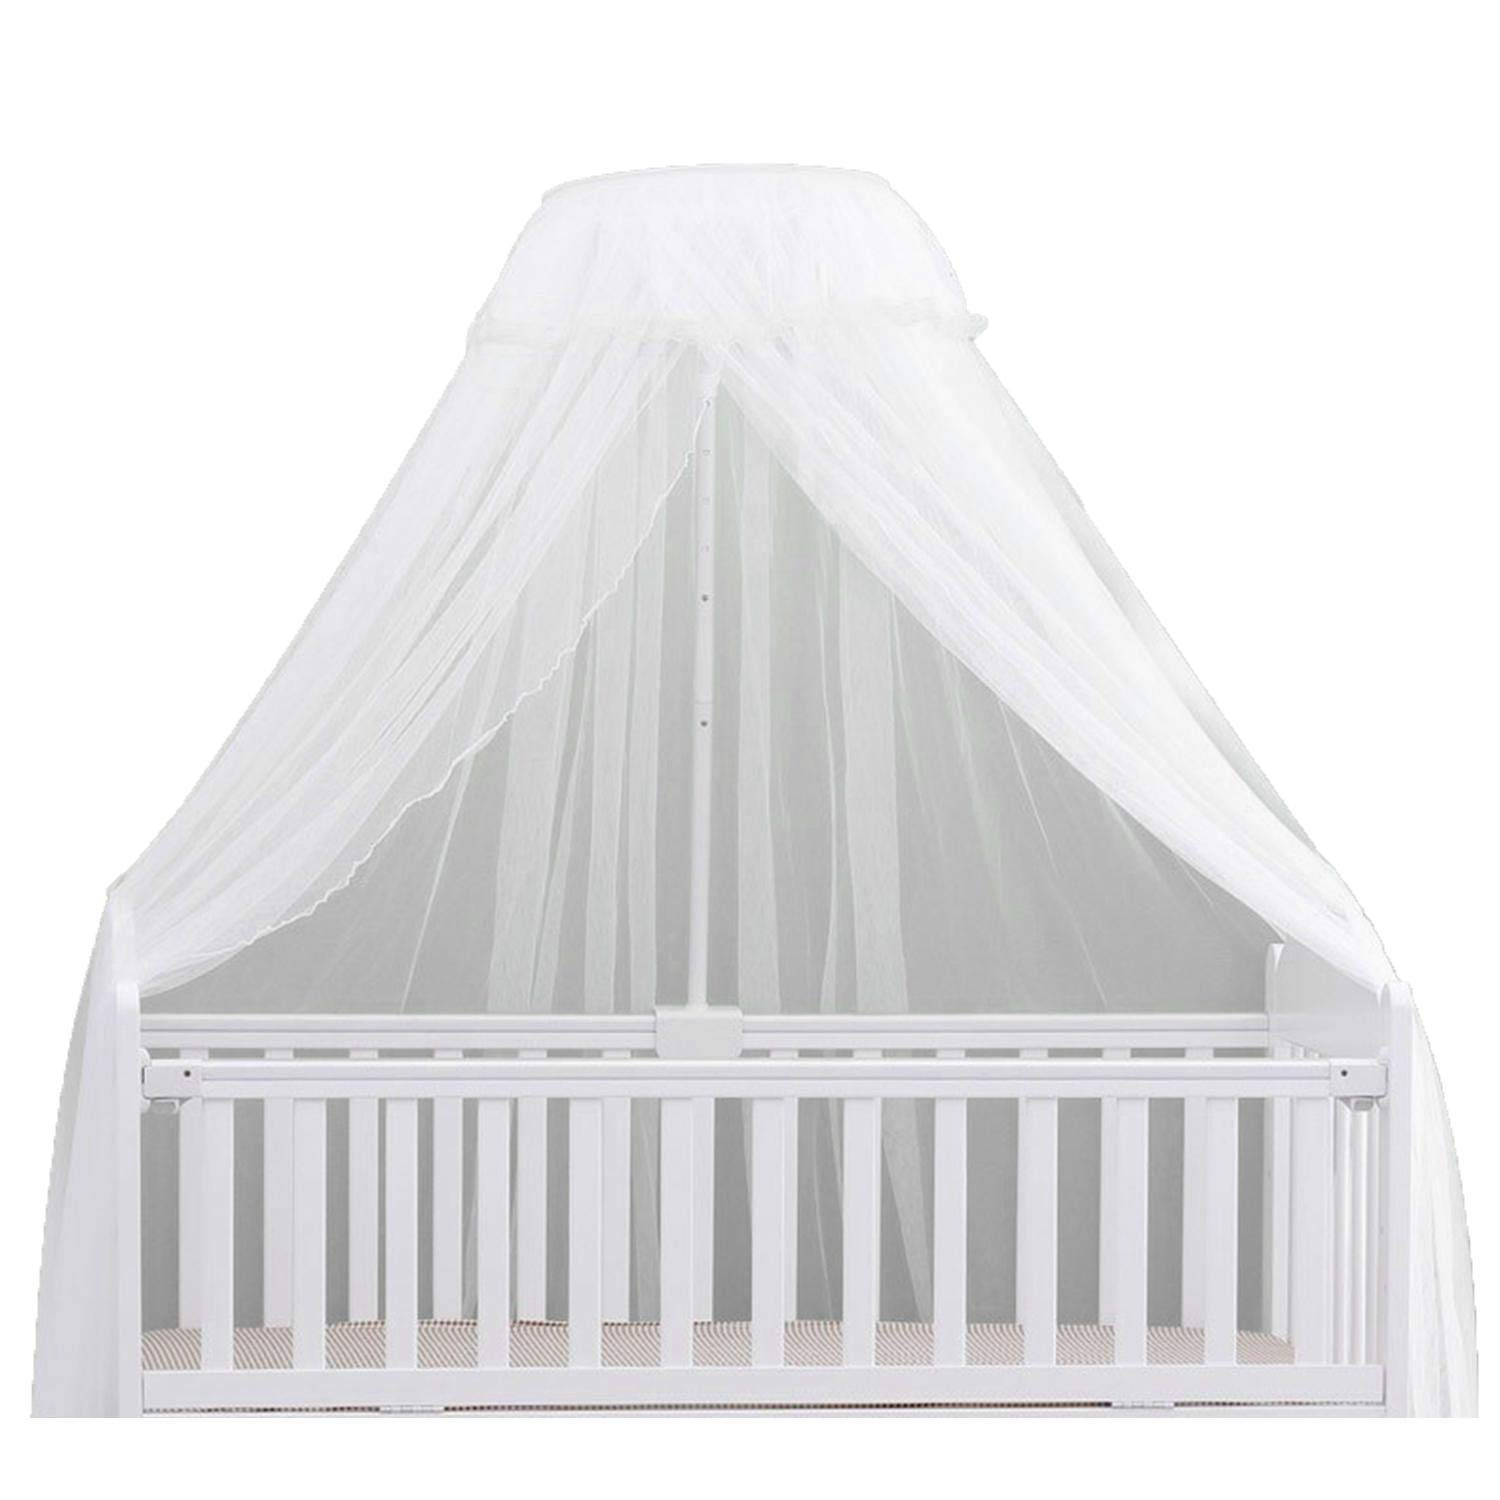 Kindsells Dome Curtain Baby Mosquito Net Child Bed Bedroom Floor Type Mesh Encryption Bed Canopies & Drapes